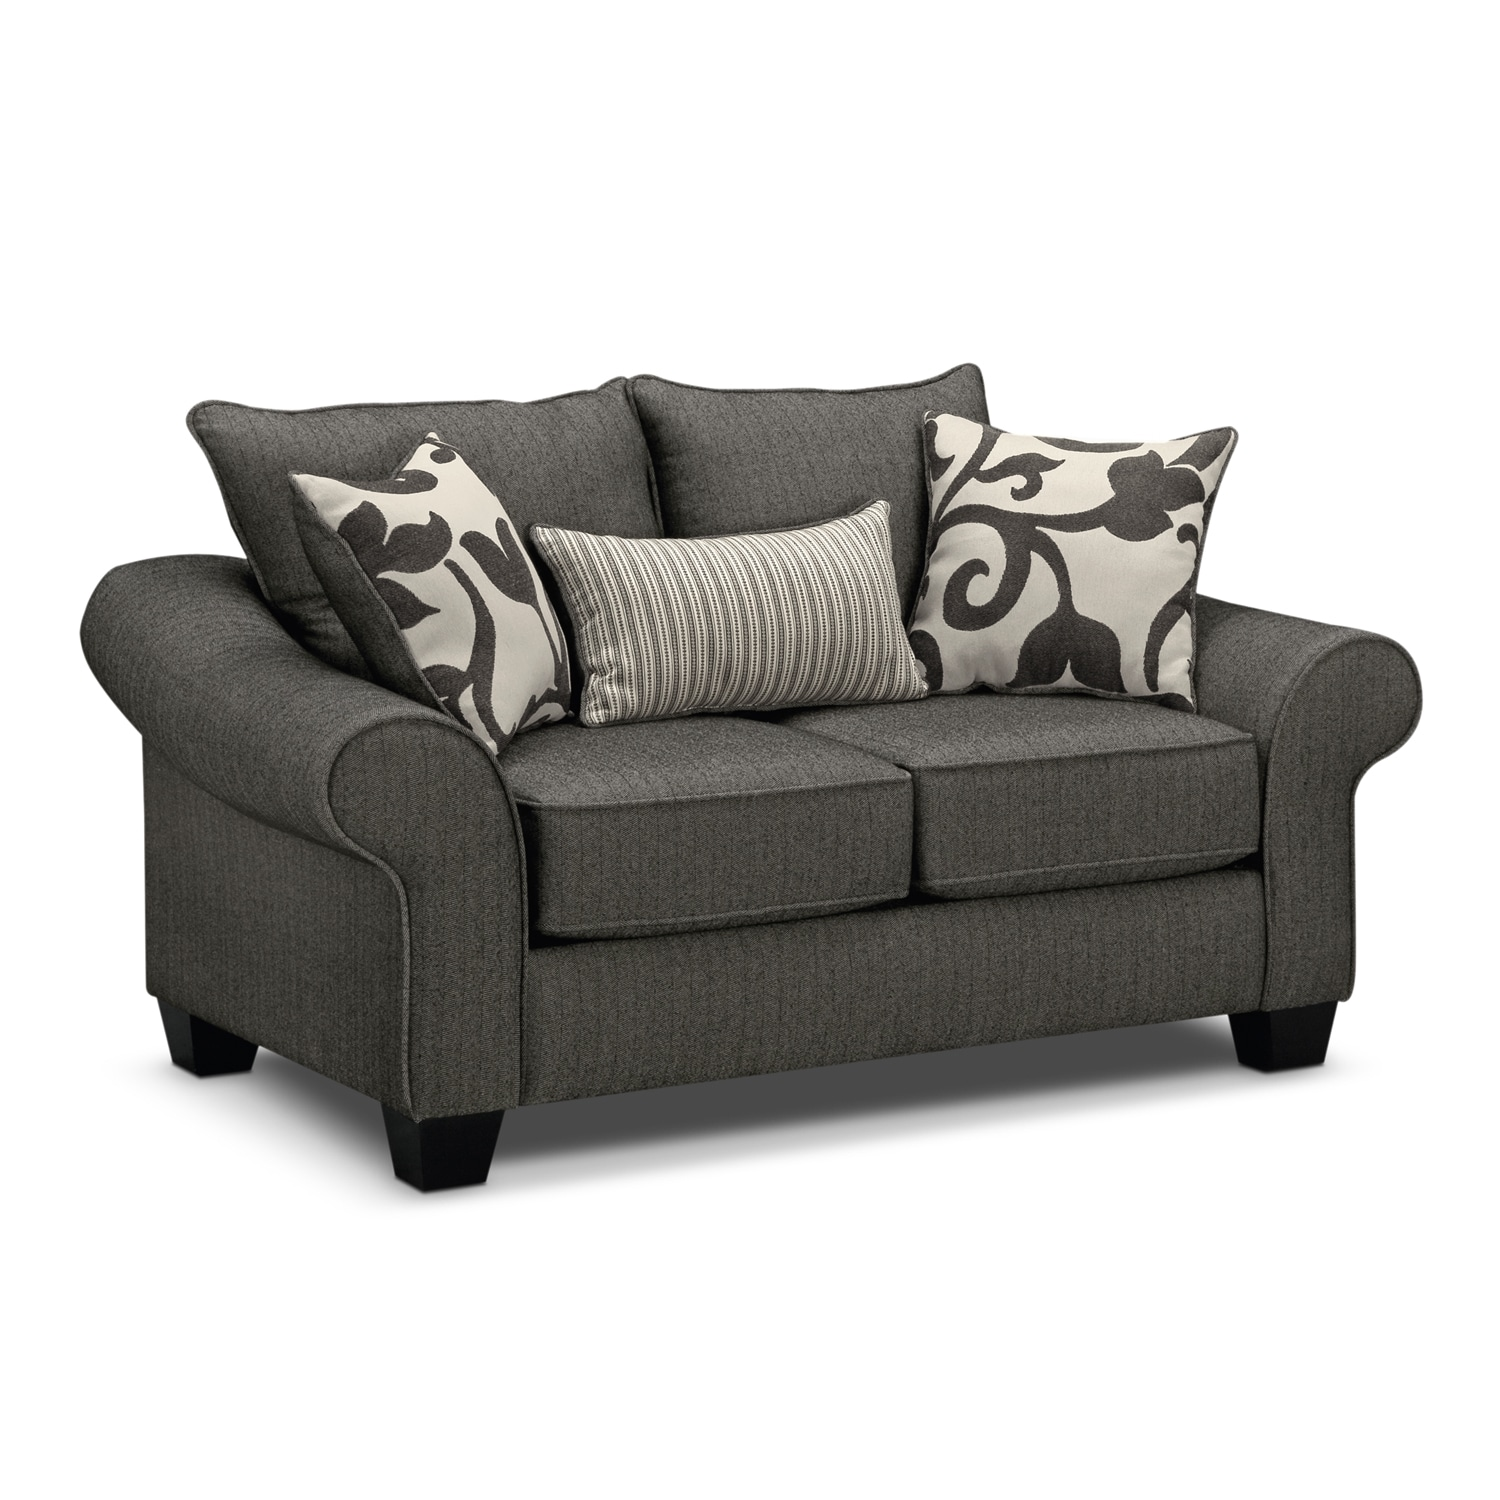 Colette Gray Loveseat Value City Furniture